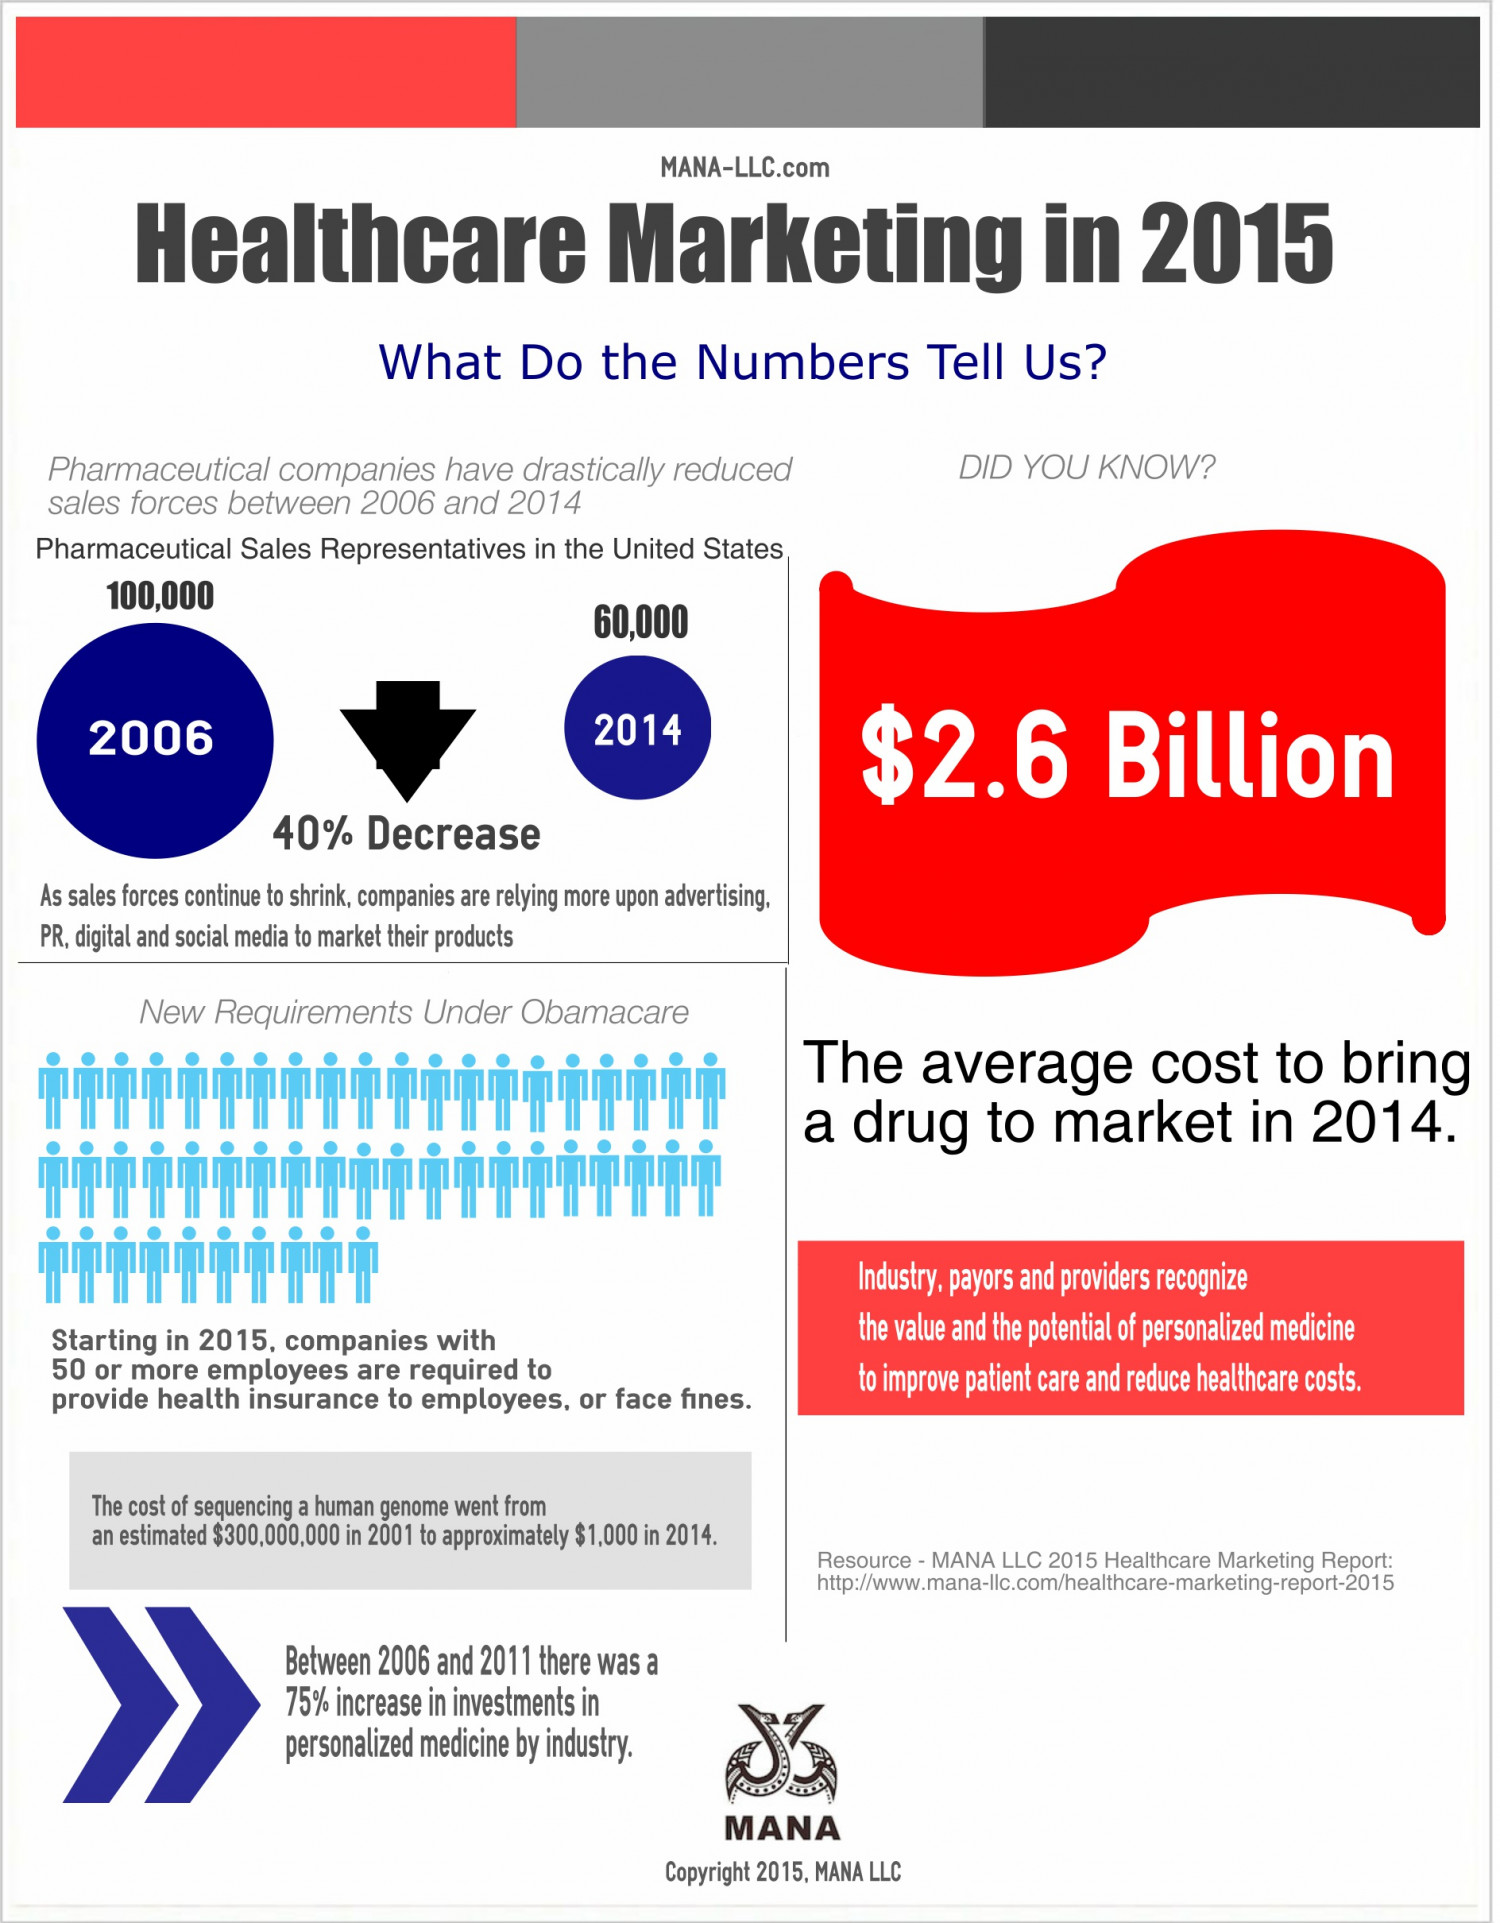 Healthcare Marketing 2015 by the Numbers Infographic